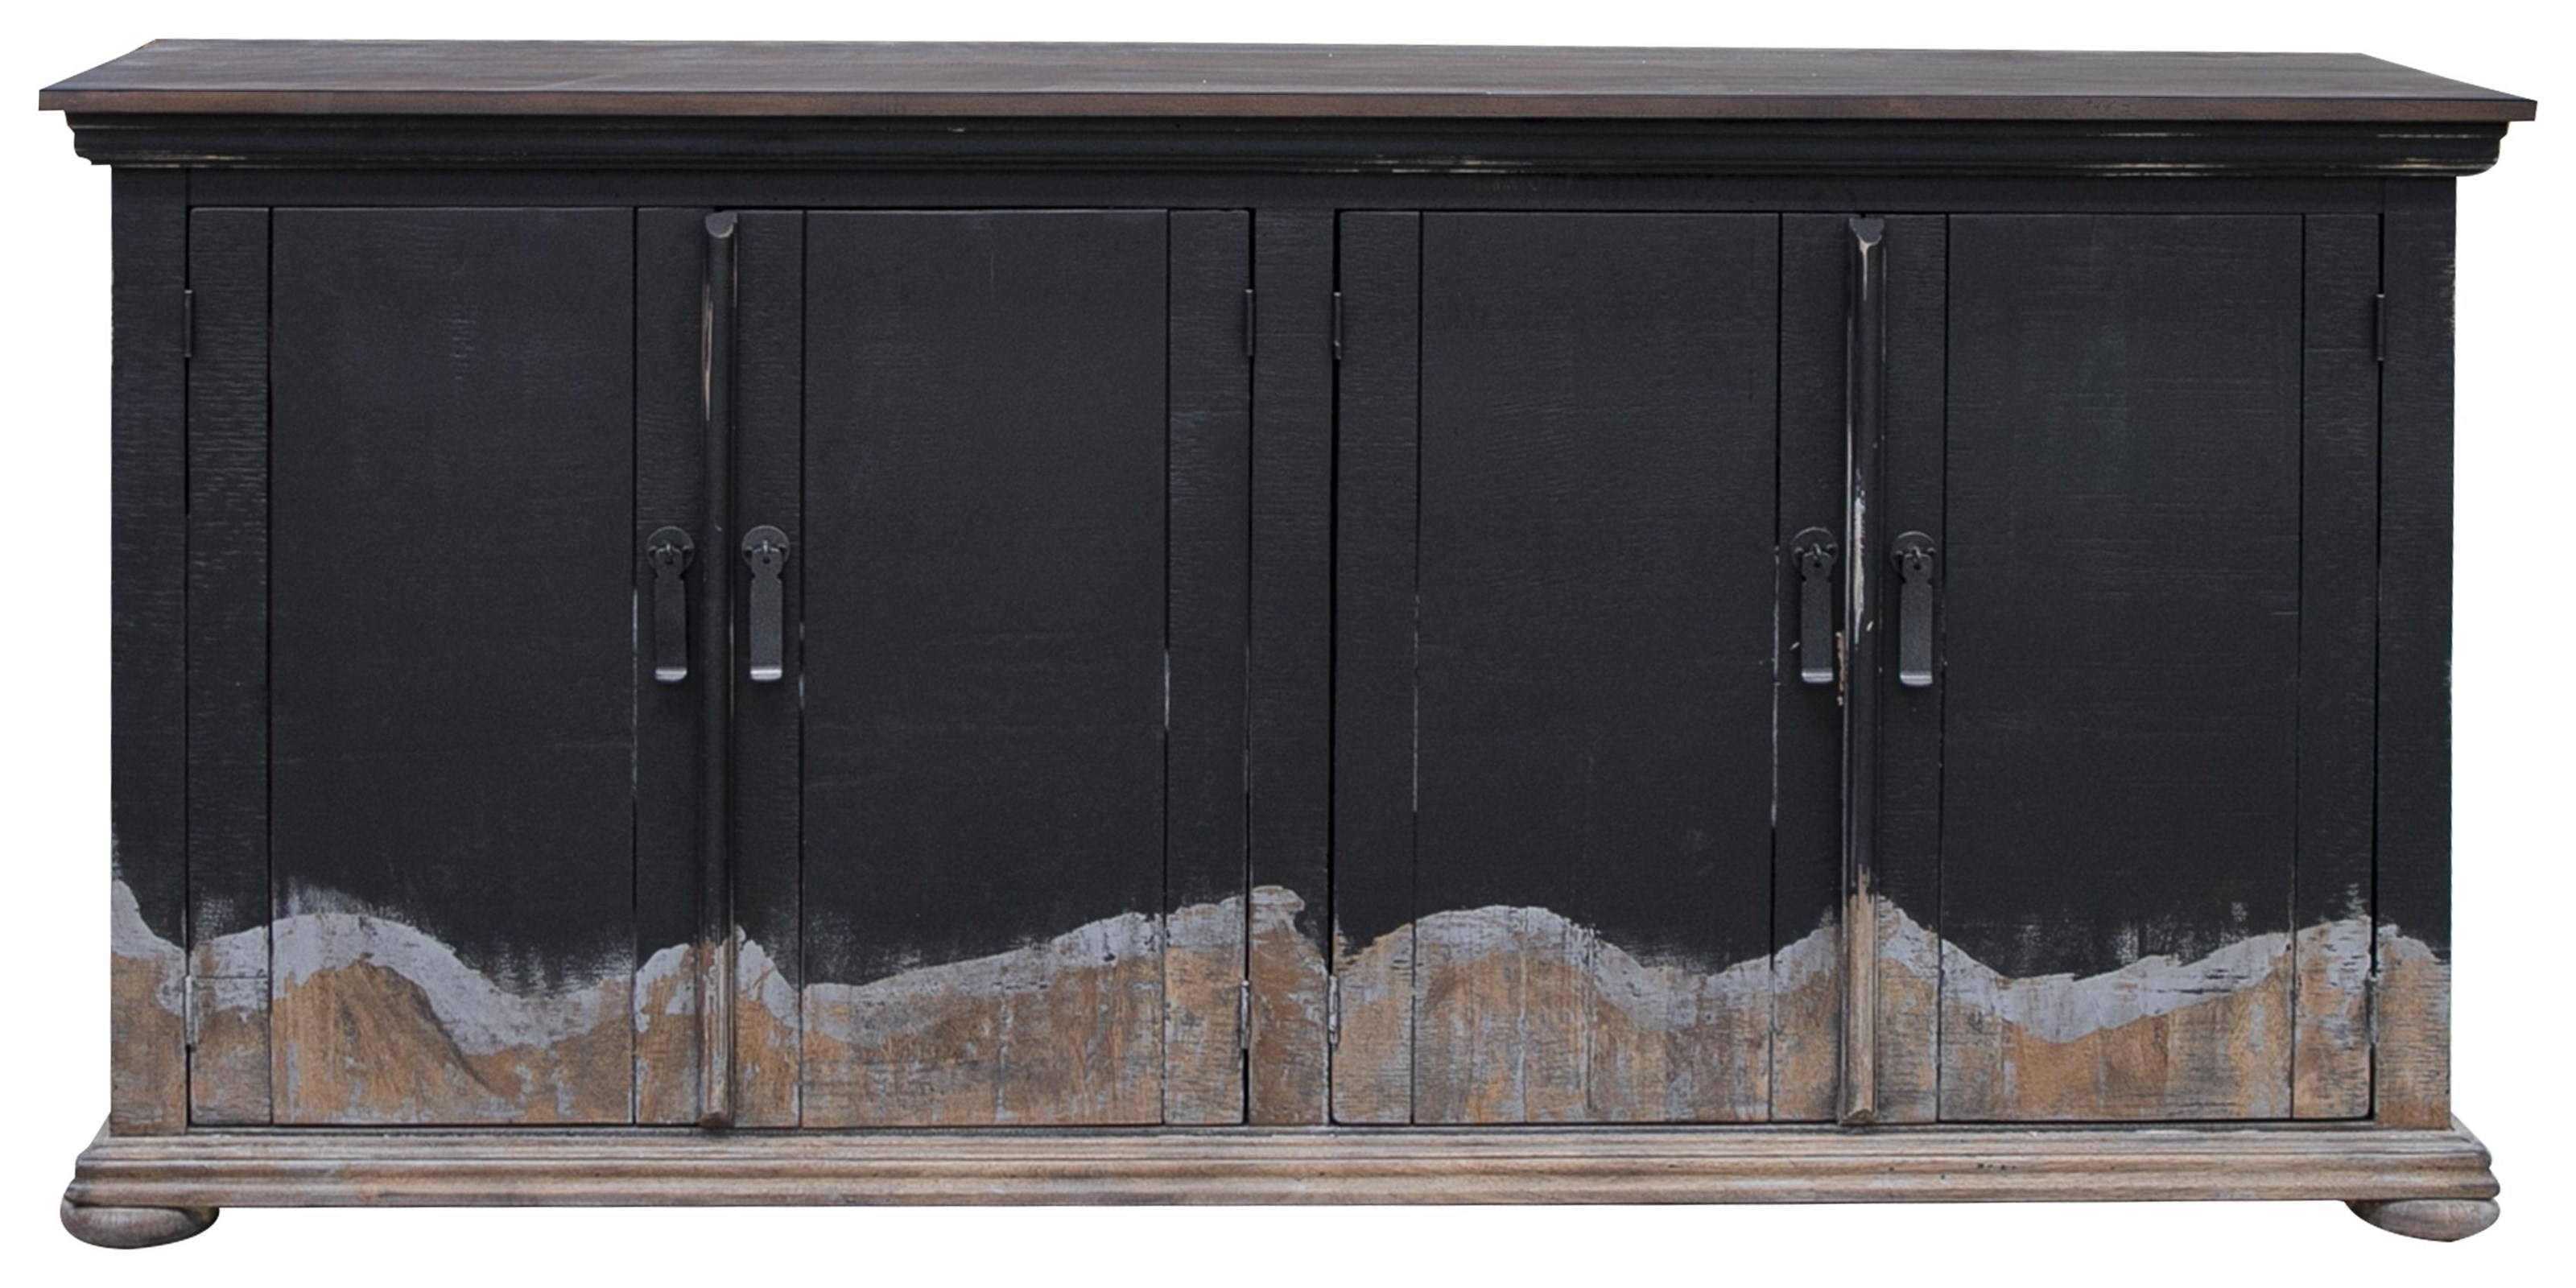 Obsidiana Solid Wood Console by Artisan at Bennett's Furniture and Mattresses